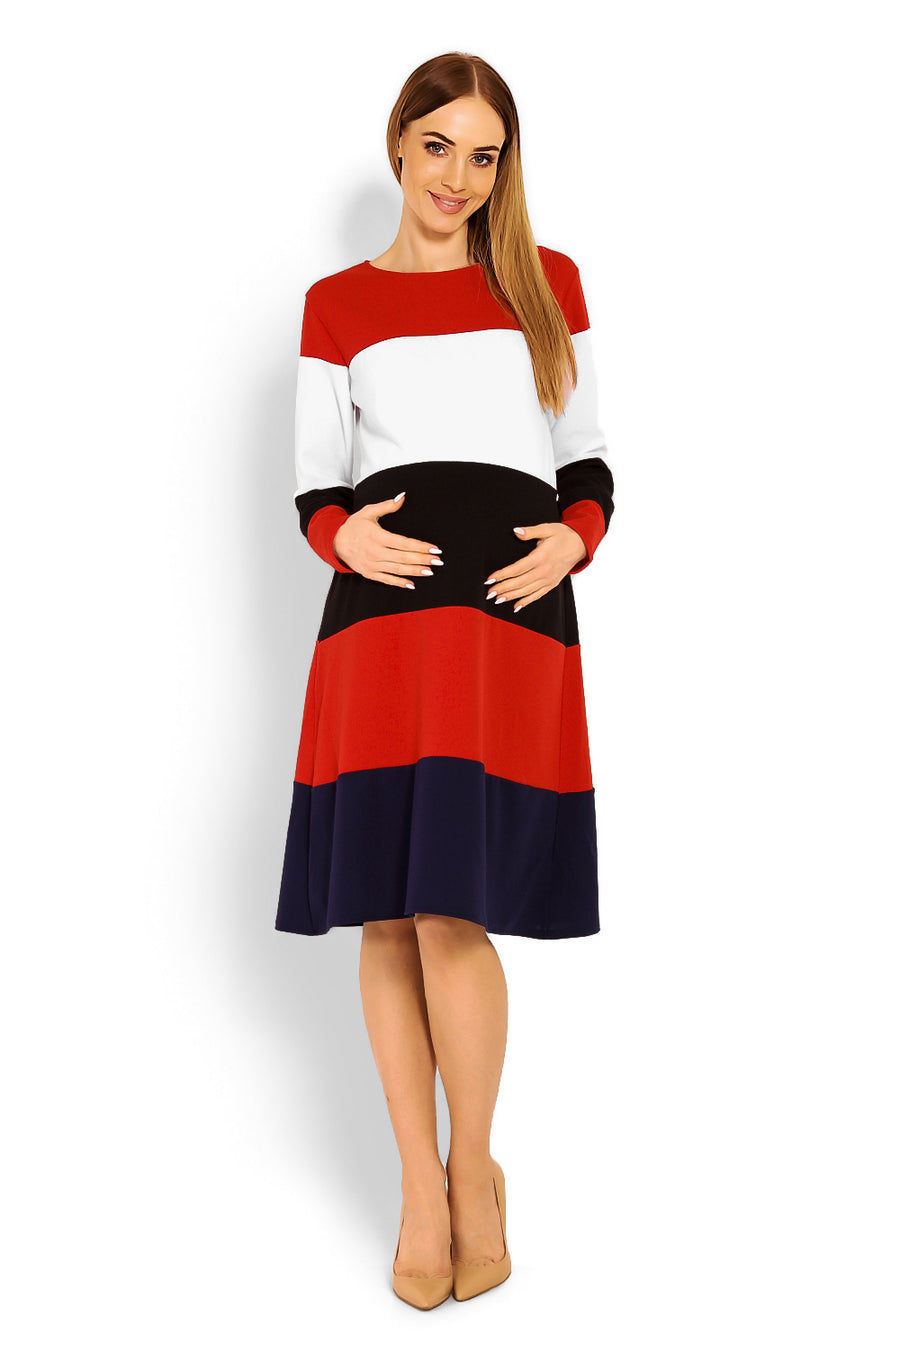 Pregnancy dress model 114520 PeeKaBoo